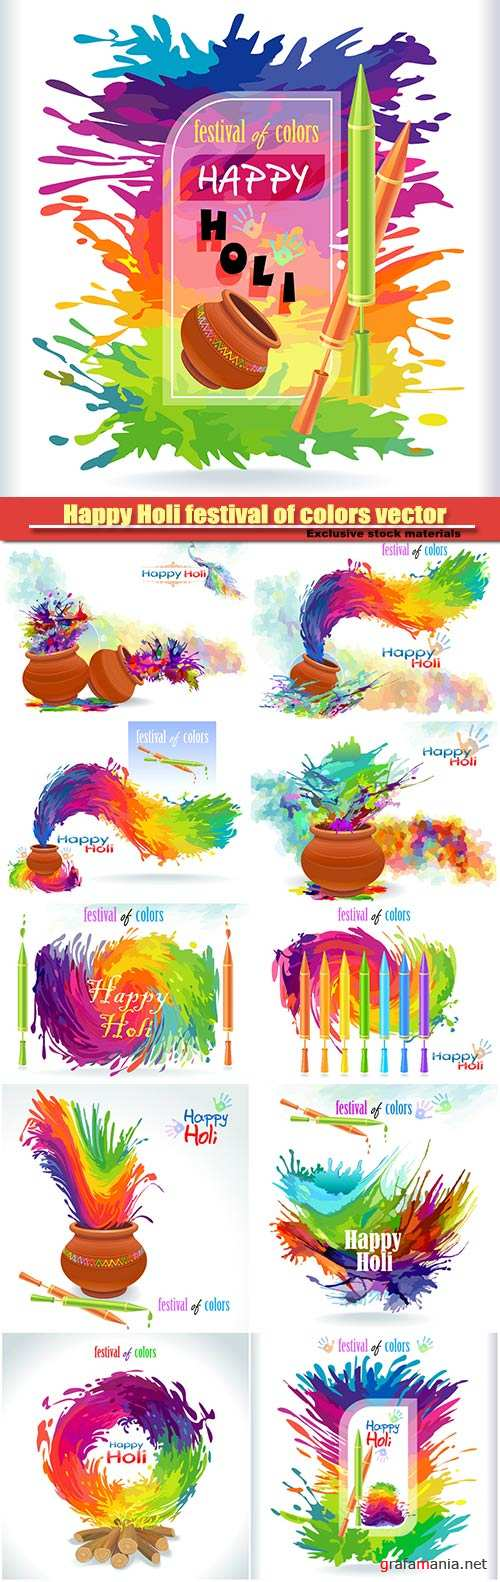 Happy Holi festival of colors vector background